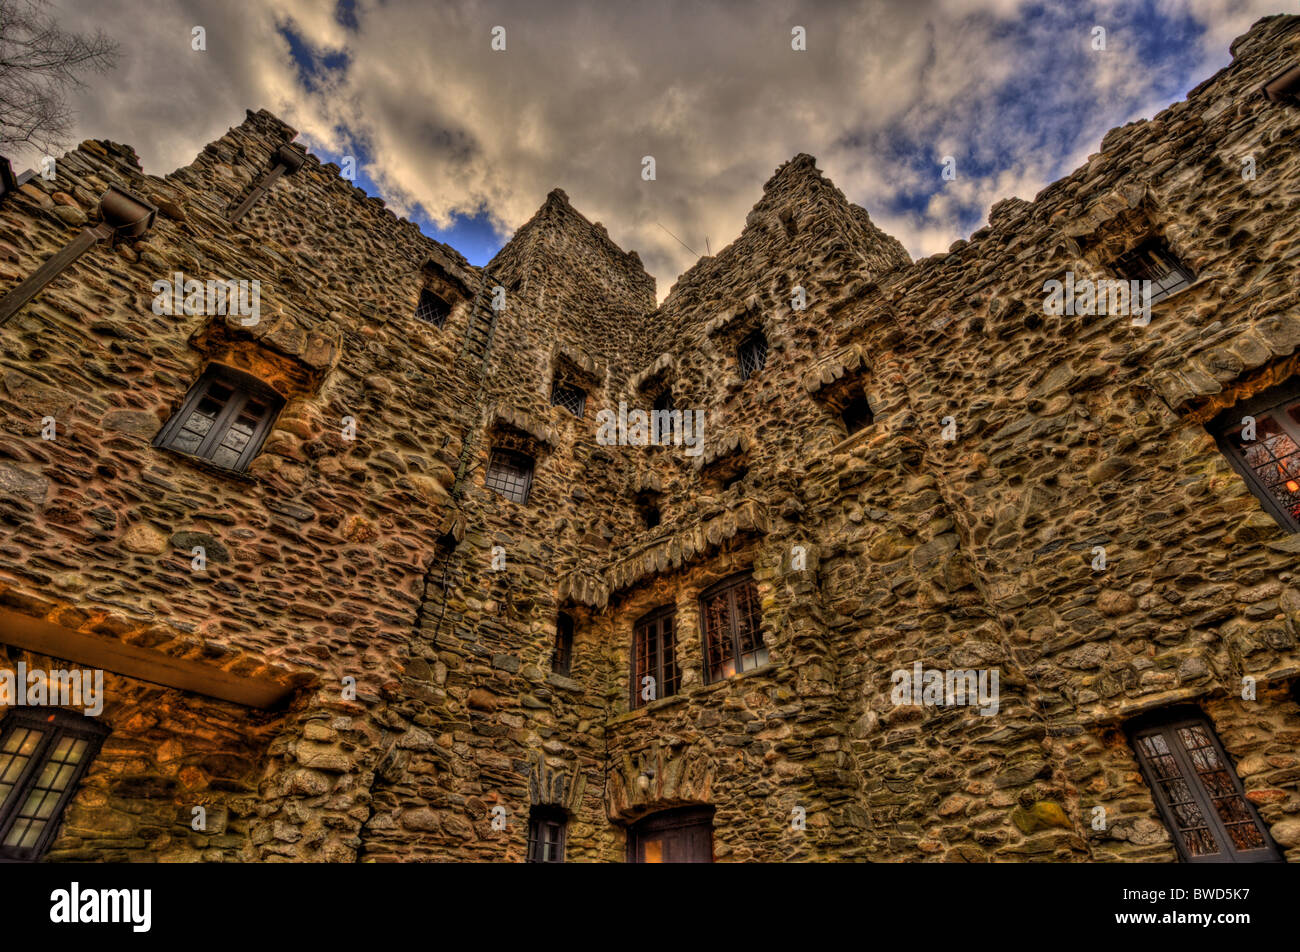 Gillette Castle - Stock Image